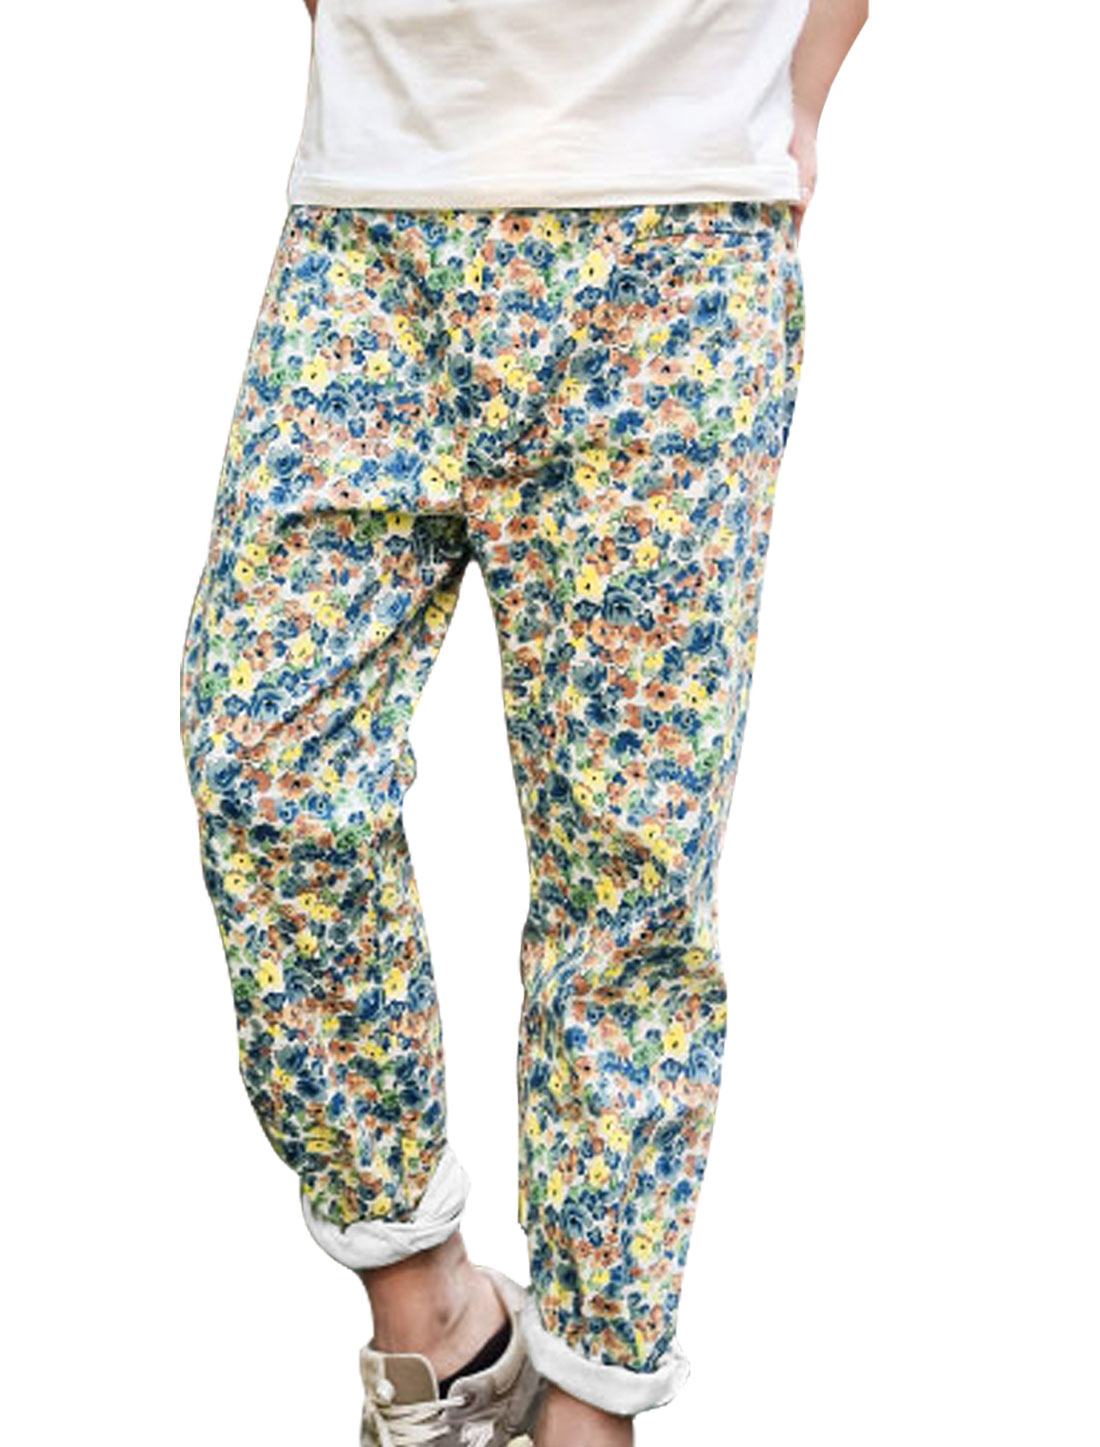 Men Belt Loop Zip Fly Floral Prints Cropped Pants Multicolor W32